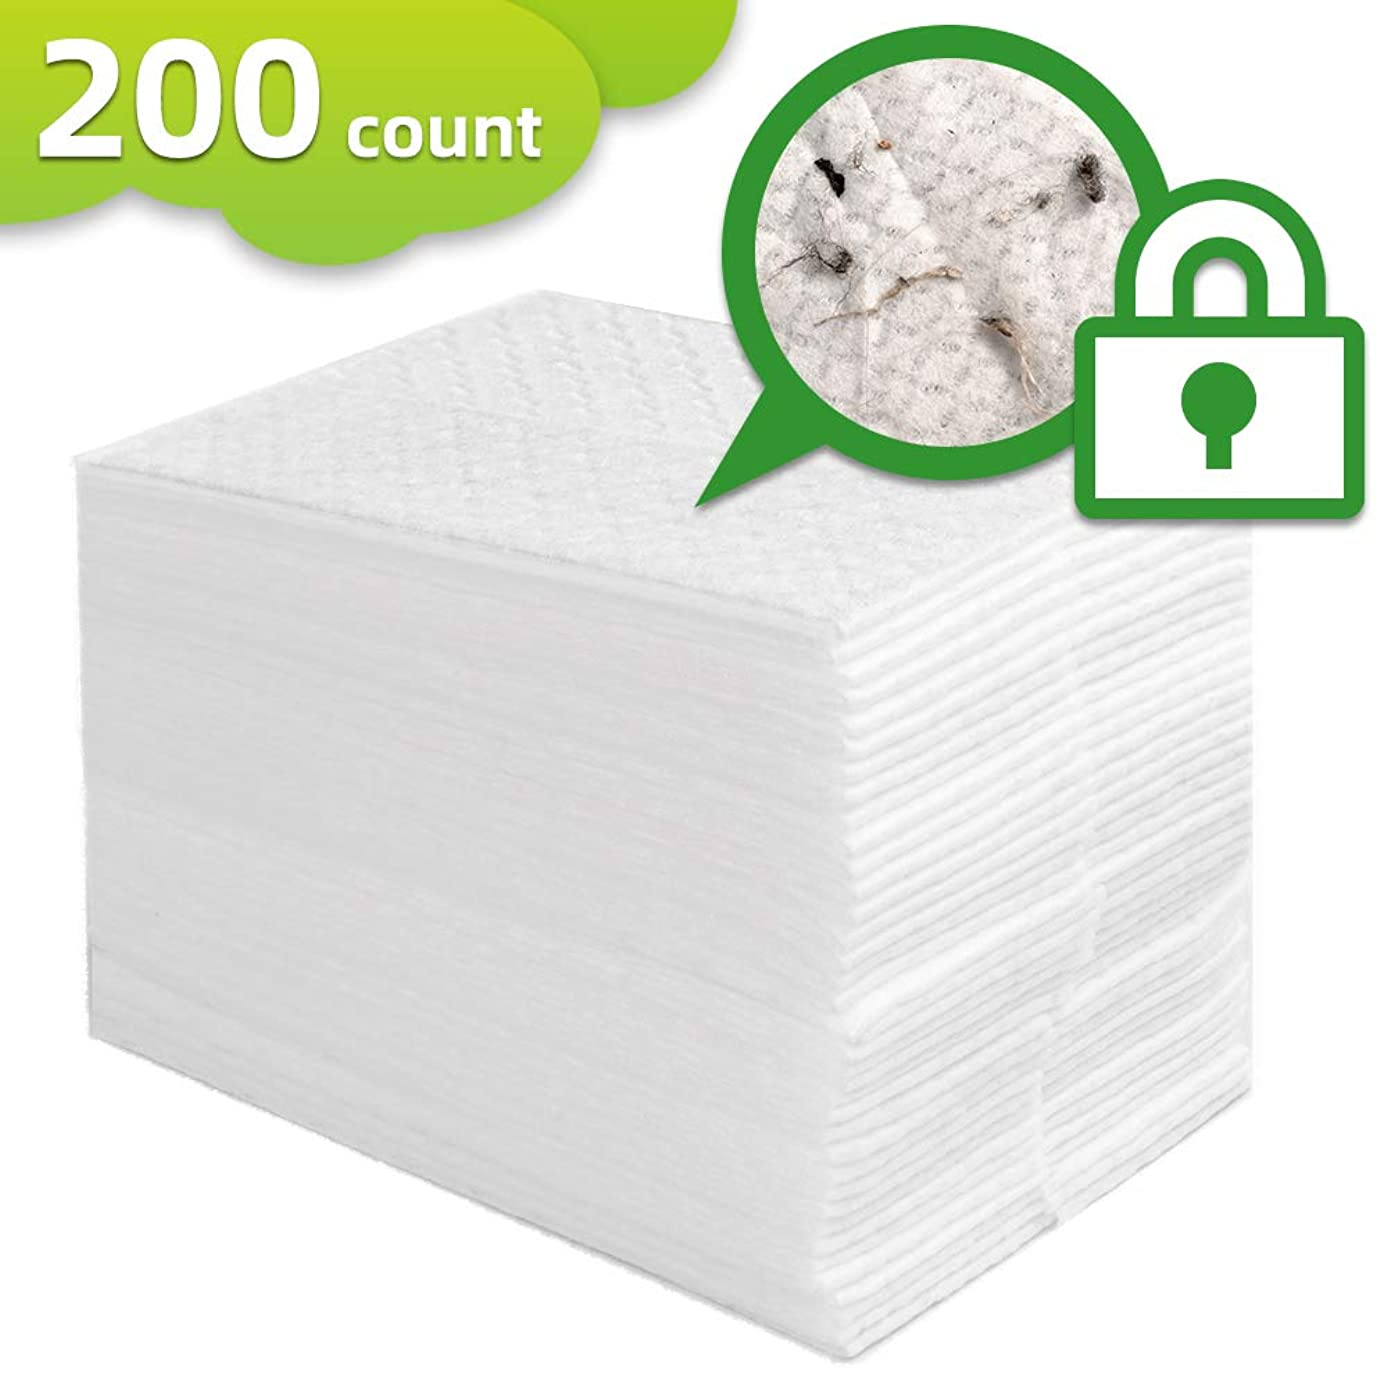 """X Home 200 Count Dry Sweeping Pad Refills Sweeper Dry Cloth Refills Flat Mop Cloths 11 x 8.6"""" Cleaning Starter Kit Static Duster Disposable Refill for Floor Hardwood Cleaning"""